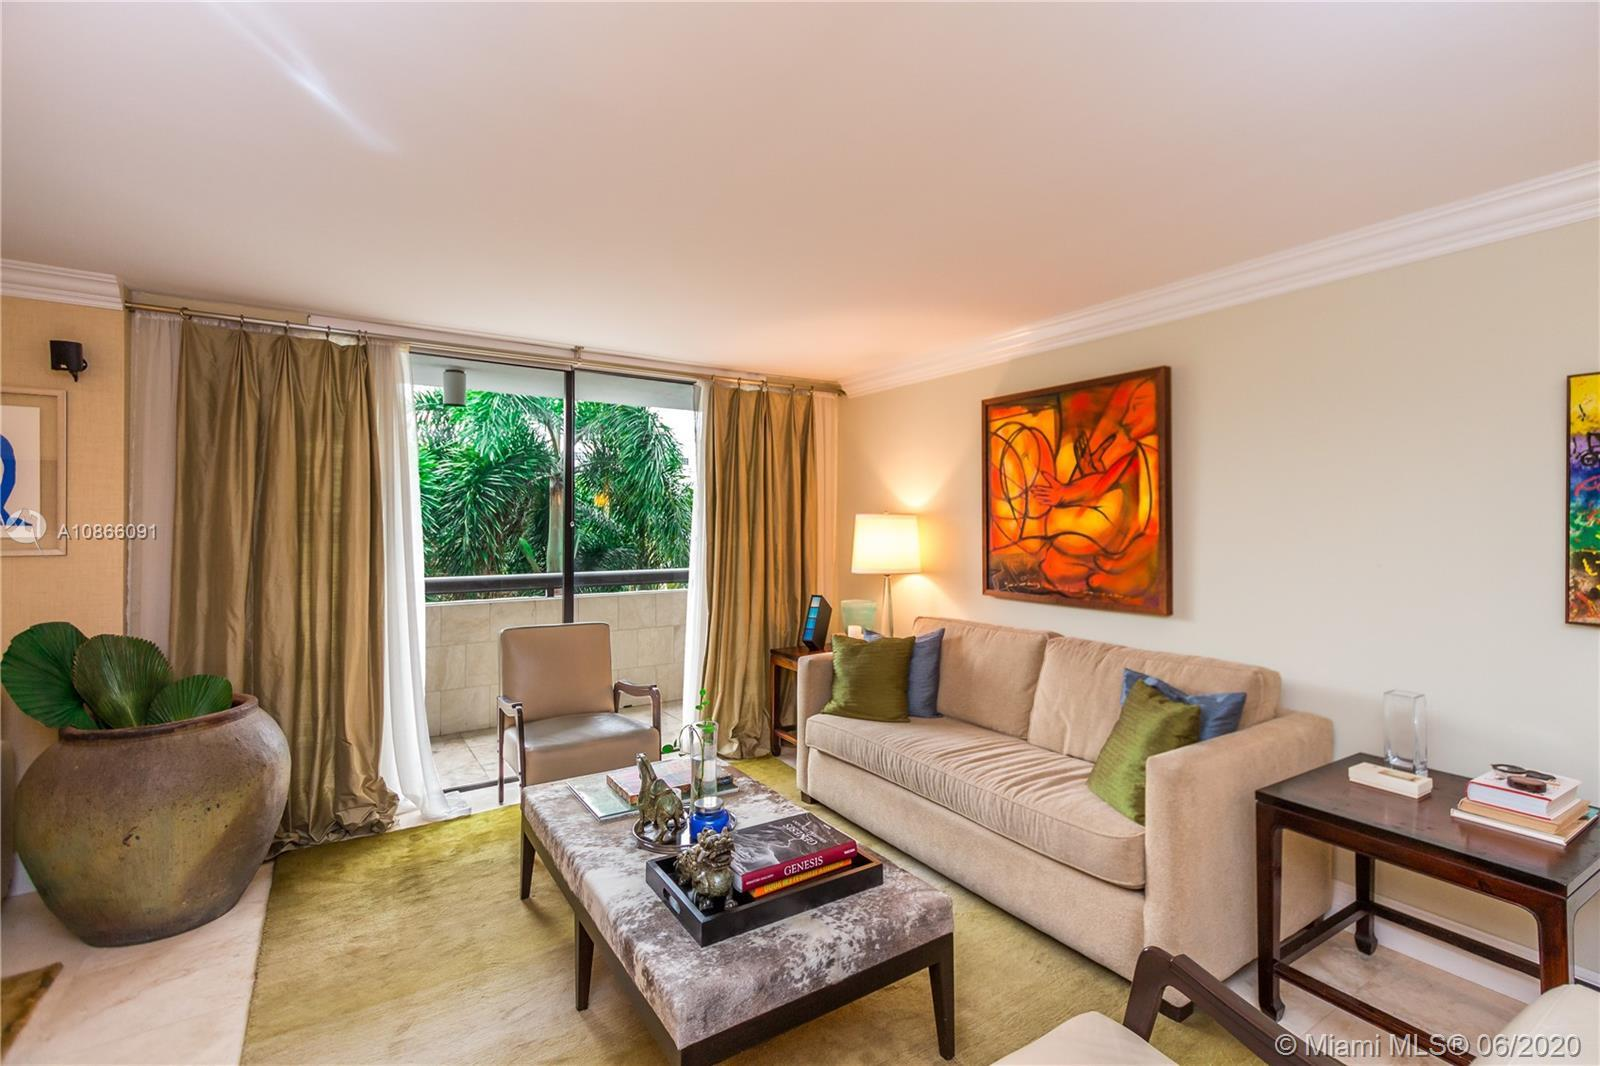 Beautiful condo located in the heart of South Beach!  This unit has been converted into a spacious o